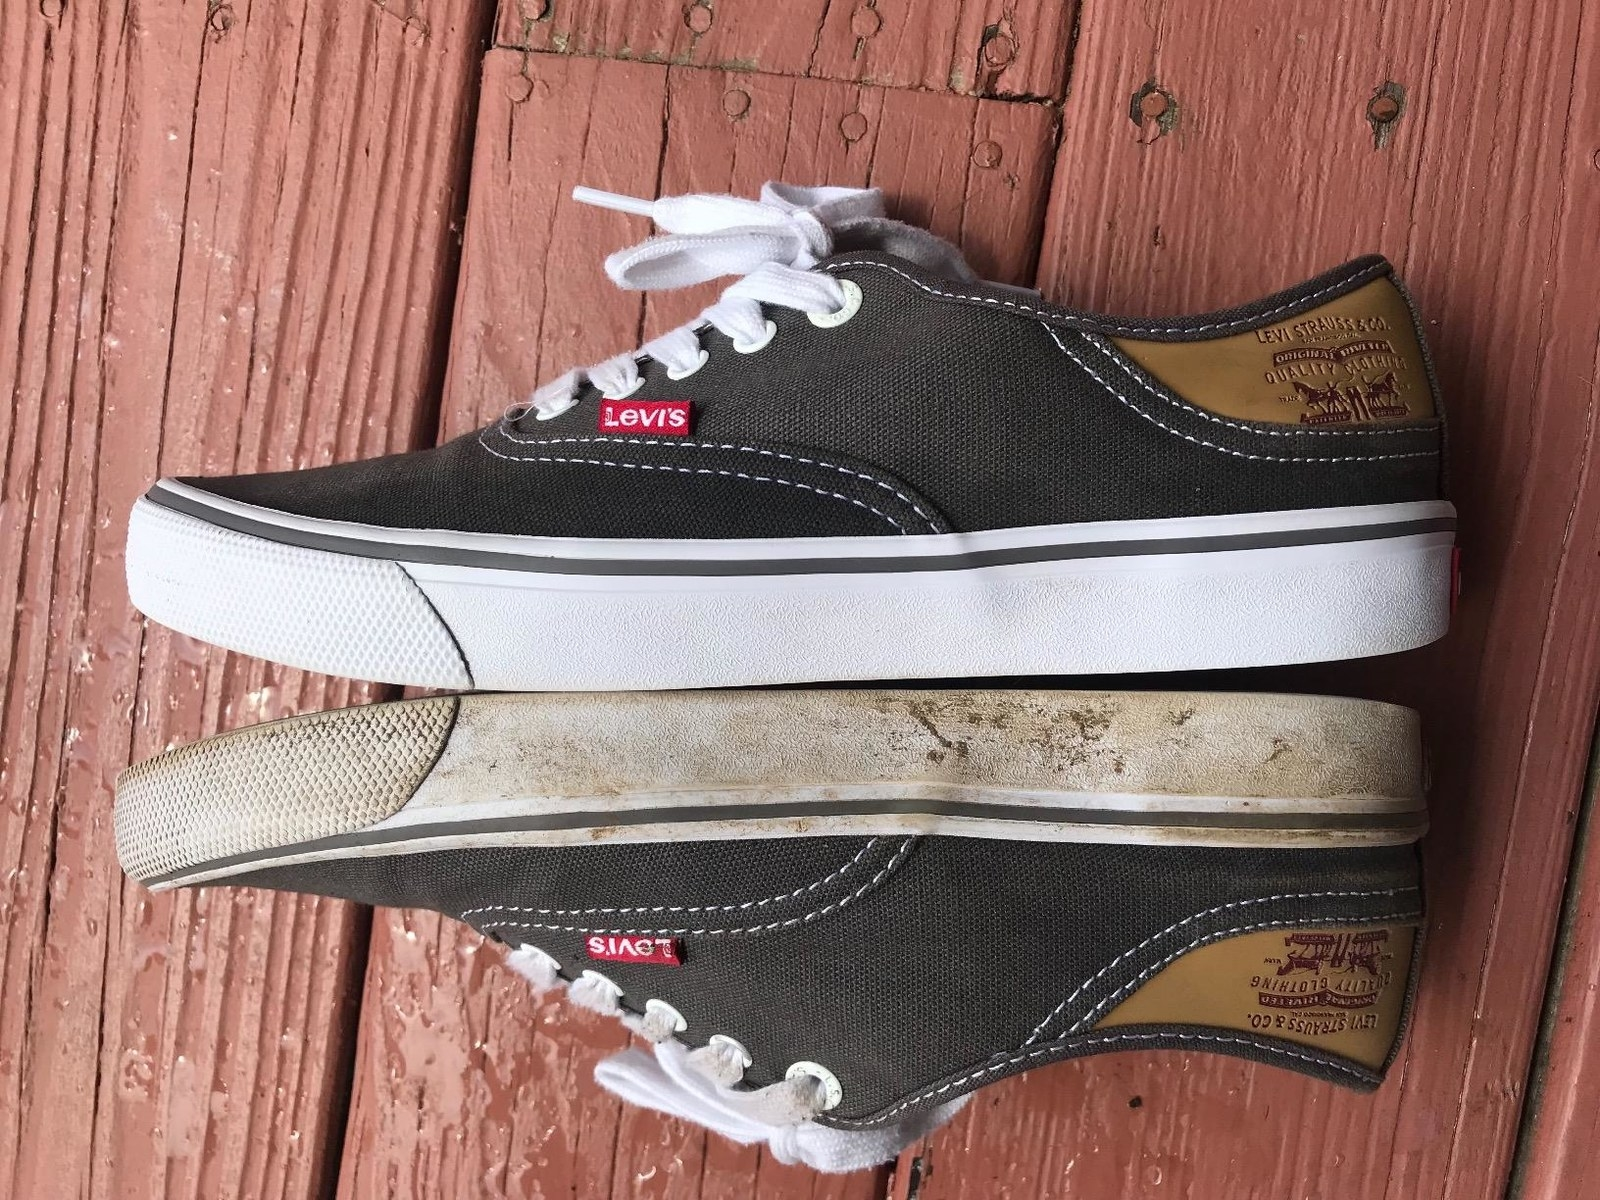 A reviewer's pair of canvas, rubber-bottom sneakers: one crusted and stained with dirt all over; the other clean, so the rubber and laces are white and the rest of the shoe is a pure black